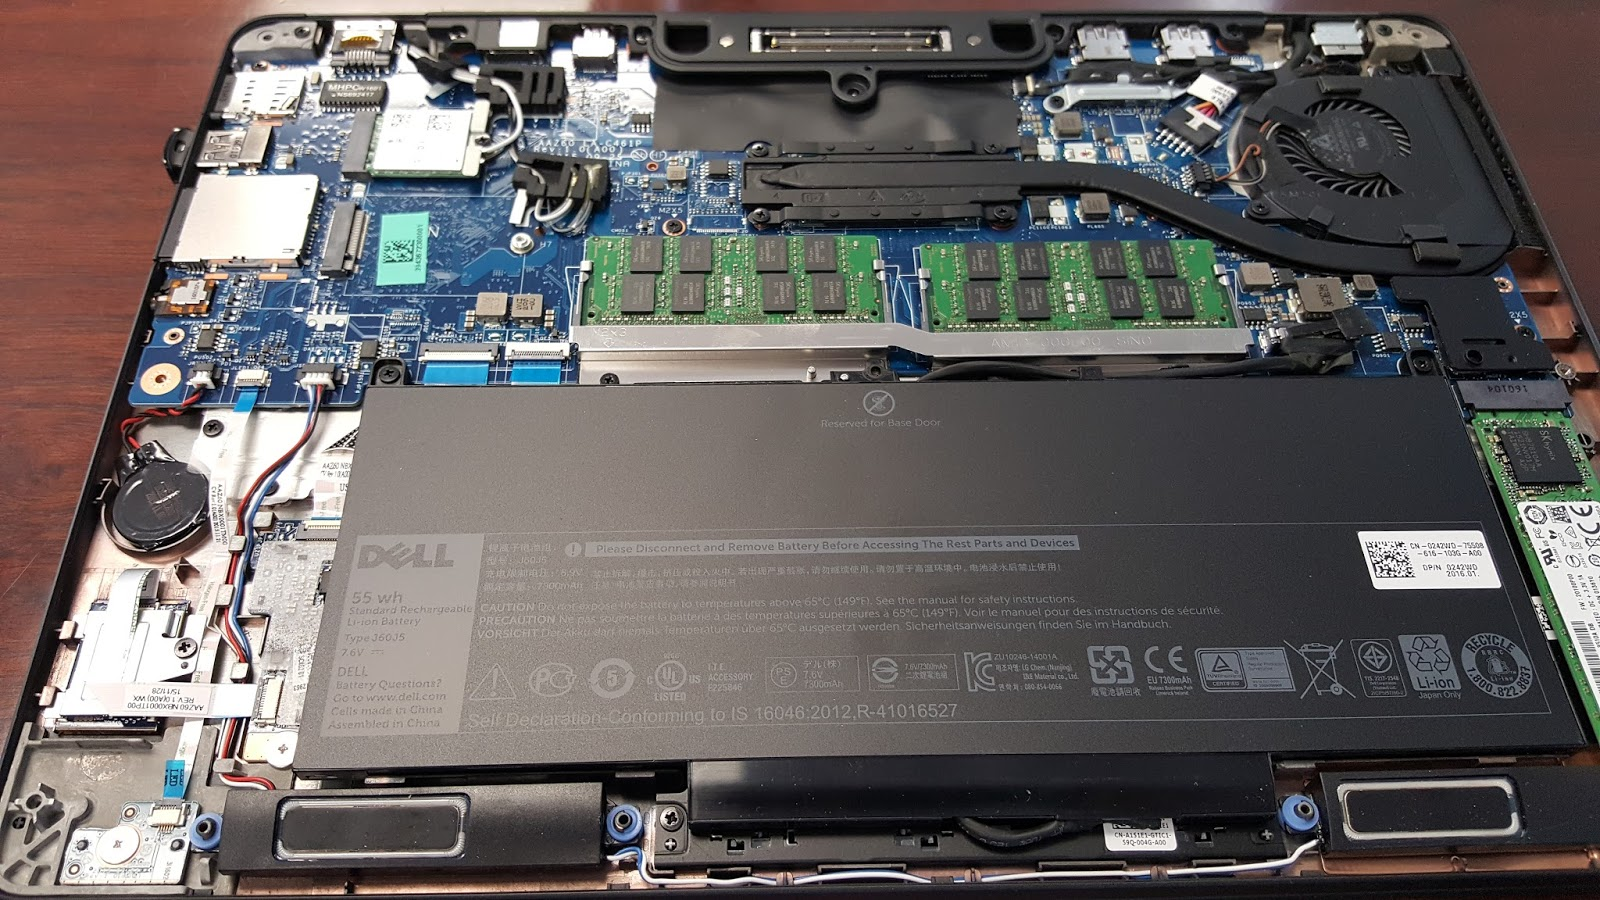 30ae6b69ab4 There really is not a lot of space inside the Dell Latitude E7470. I've  never seen a dell latitude with so little to work with. Even the battery is  screwed ...